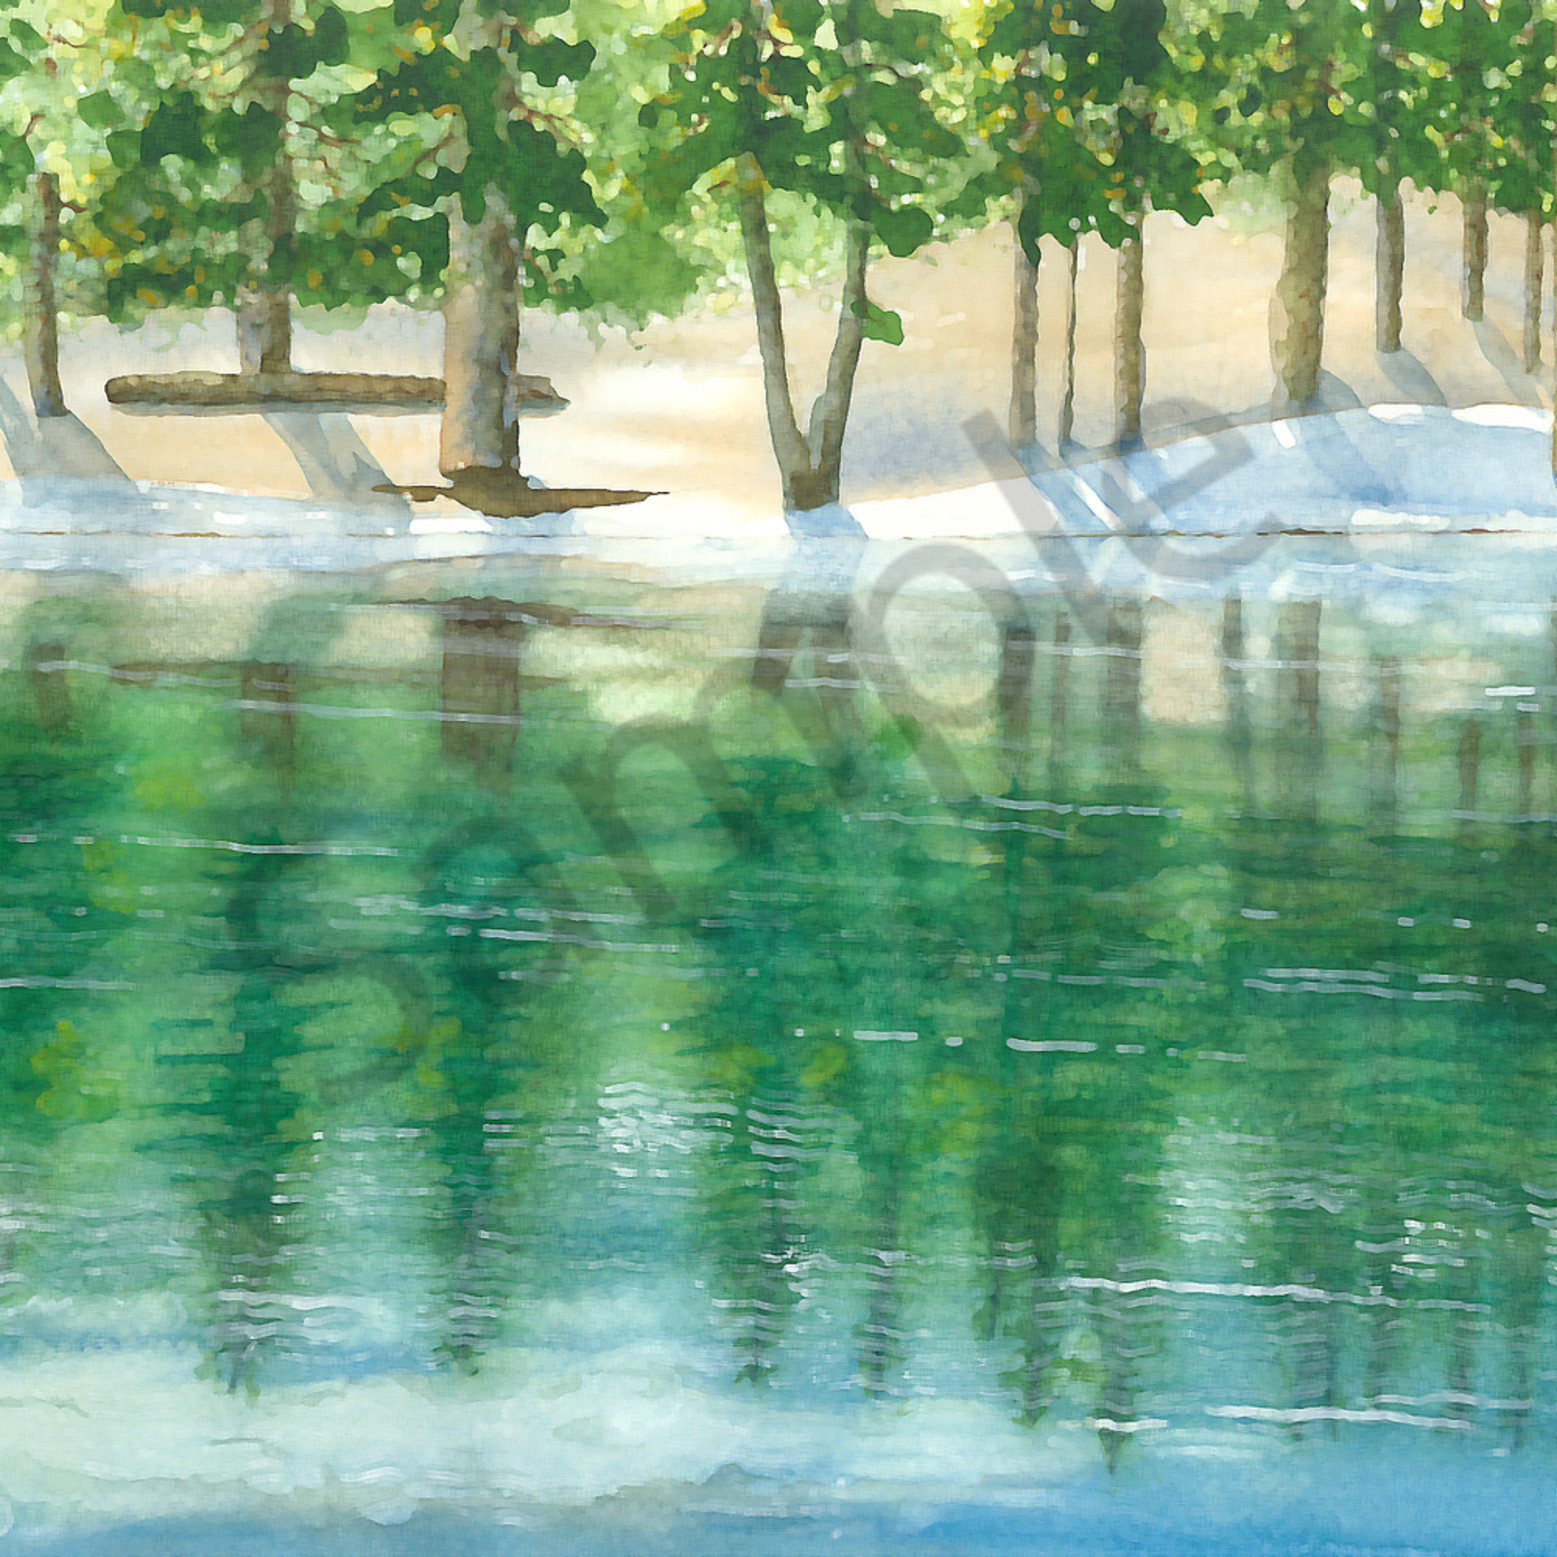 Water012019   watercolor painting   green valley lake reflection big bear 2019   ps paint daubs fcvjr4